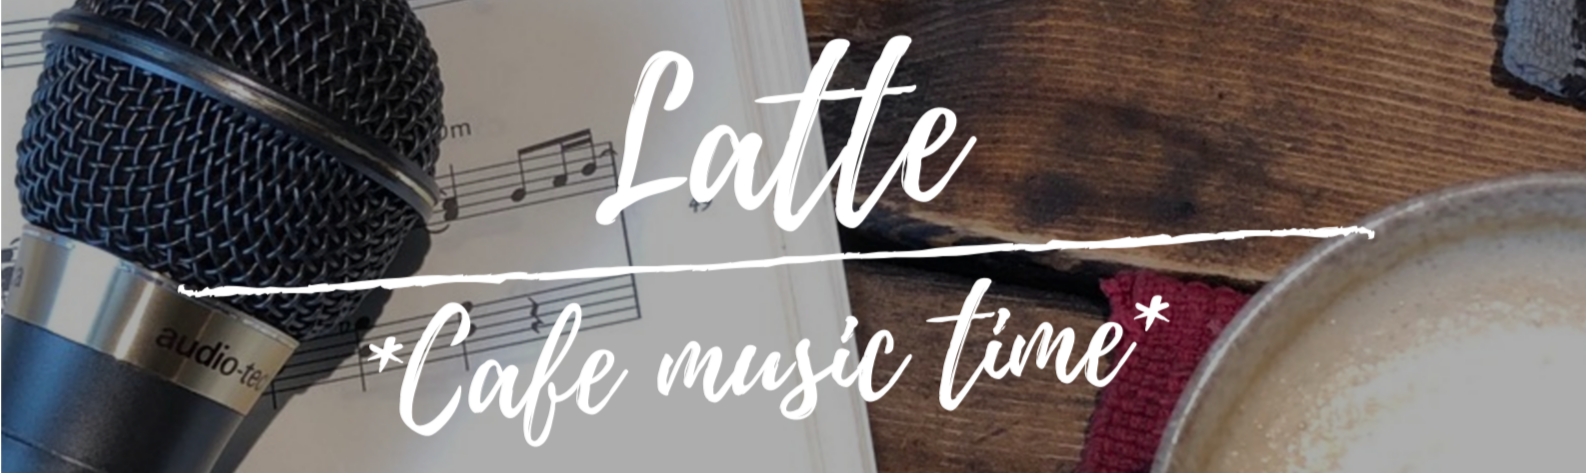 Latte~Cafe music time~